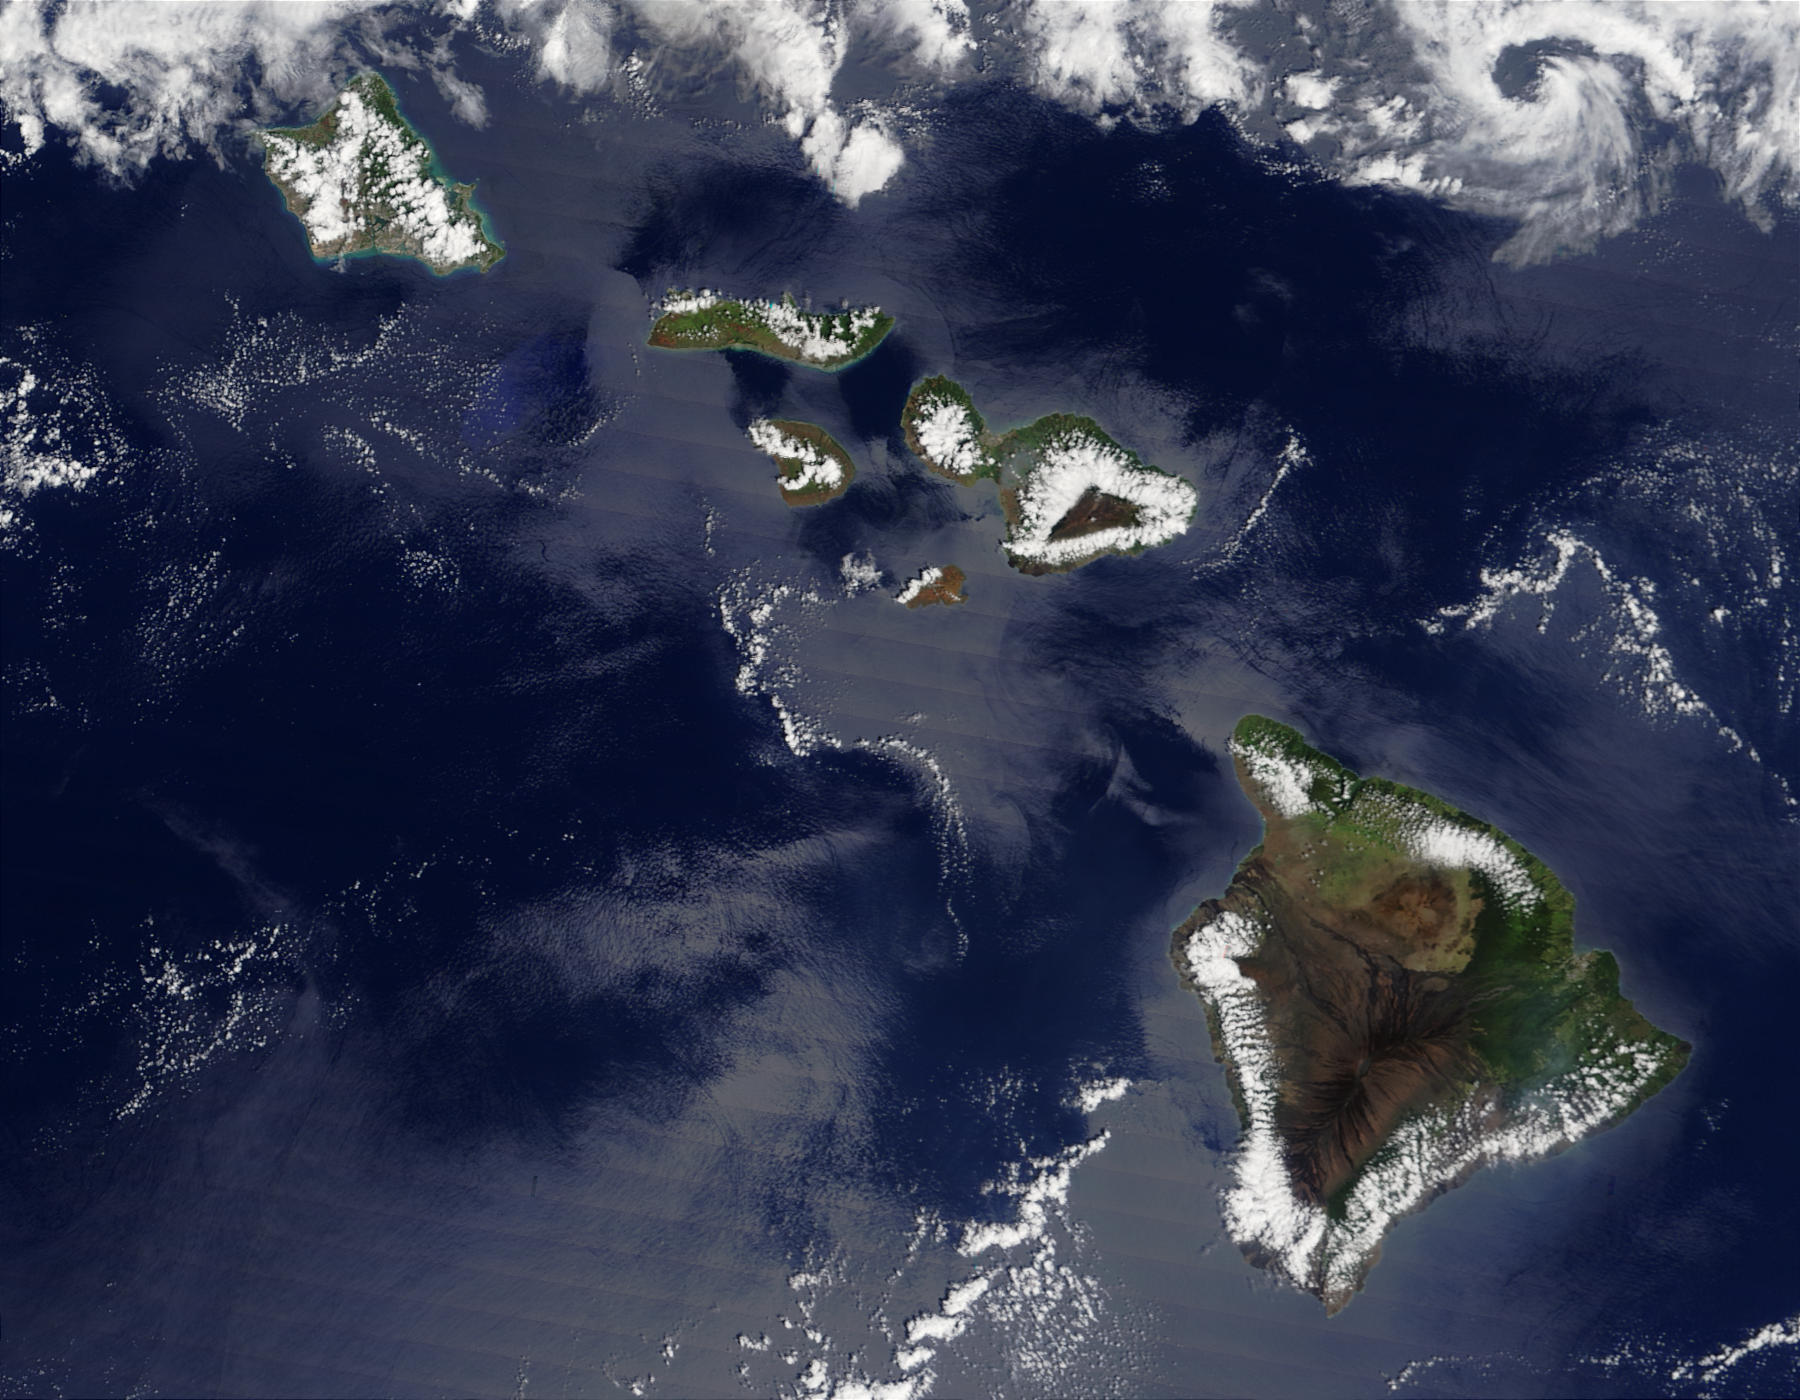 Image 5 for 2020-05-01 Island map generator and Text Mapper